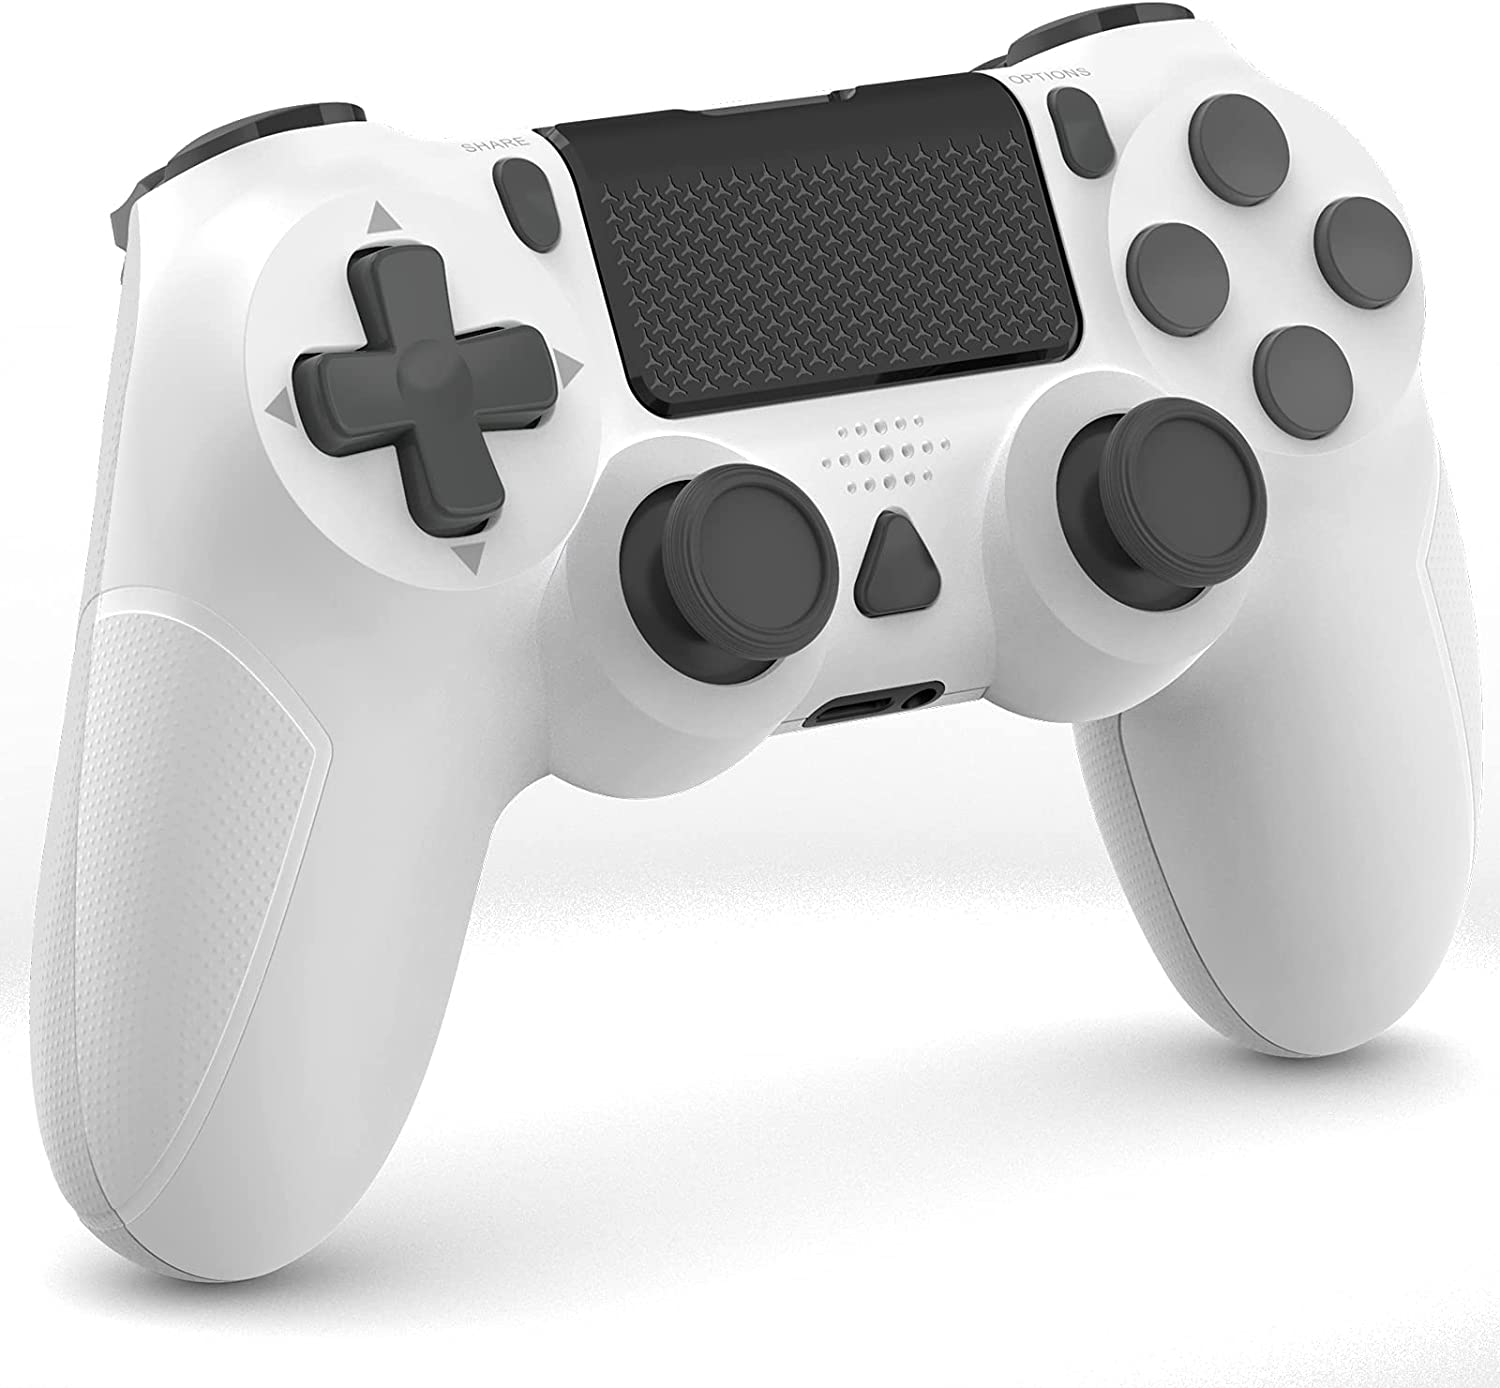 Max 61% OFF YCZHDV Import Wireless Pro Controller Remote 4 Compatible Gamepad with